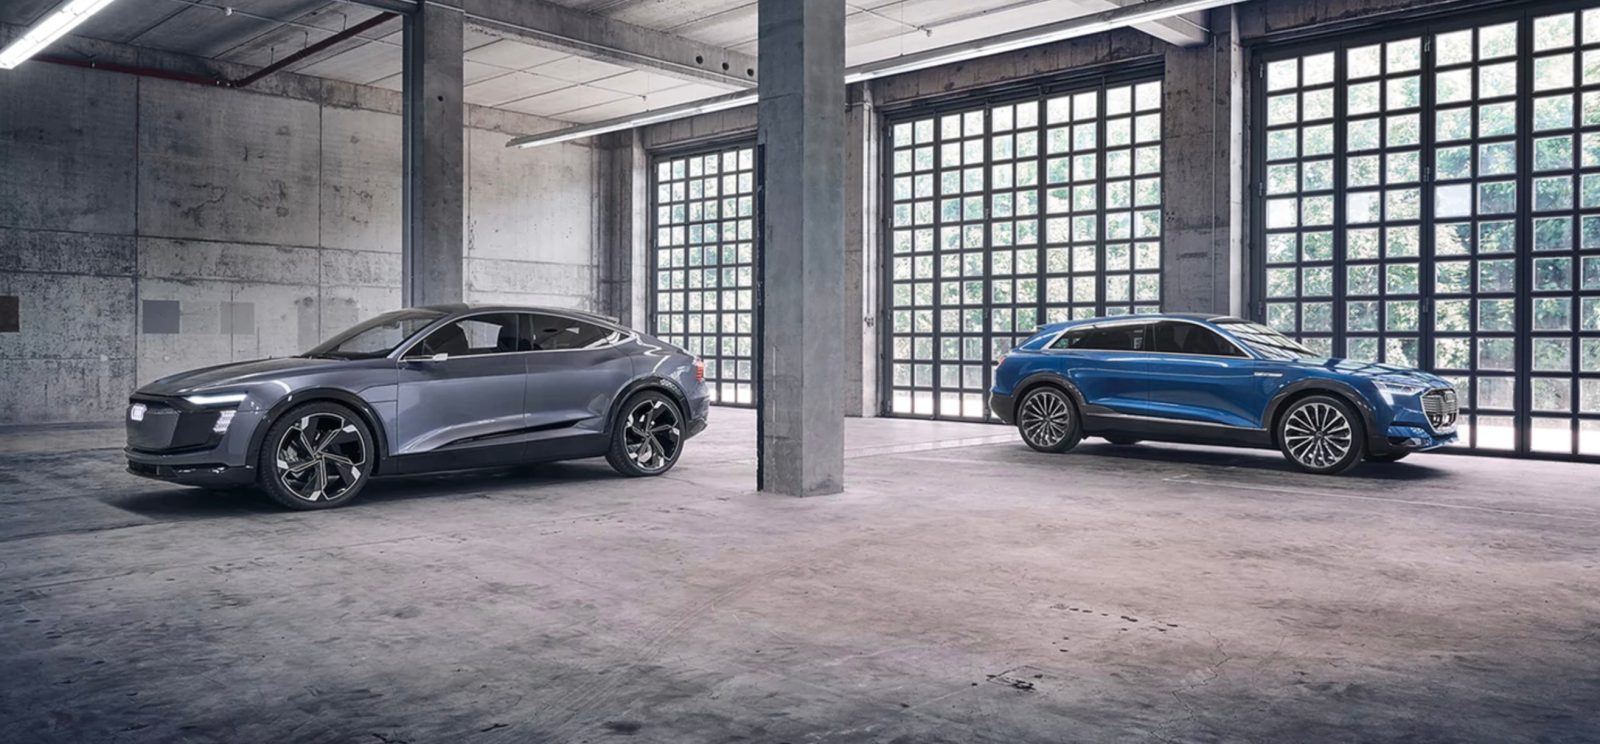 audi opens reservations with deposits for its two new e tron